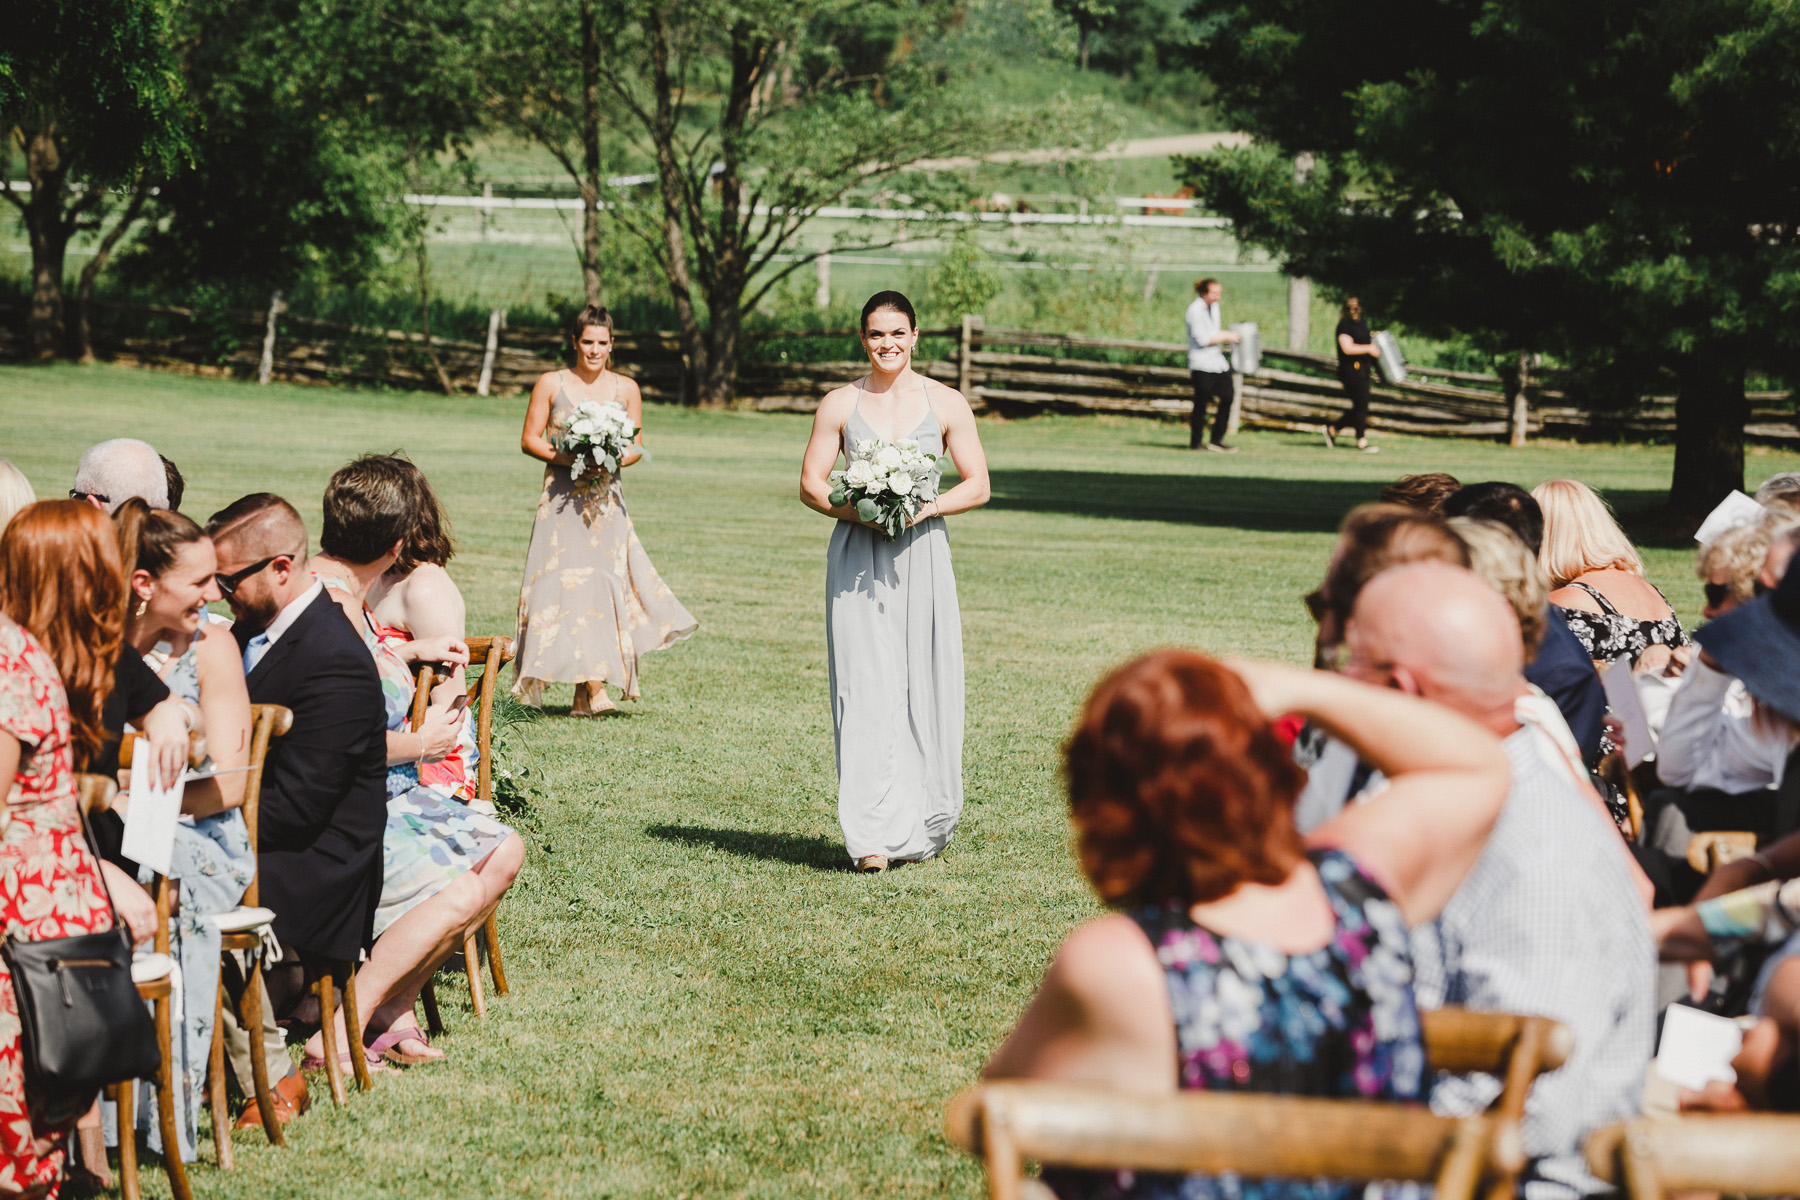 Epic Garden Party Wedding of Hockey Legends Pictures